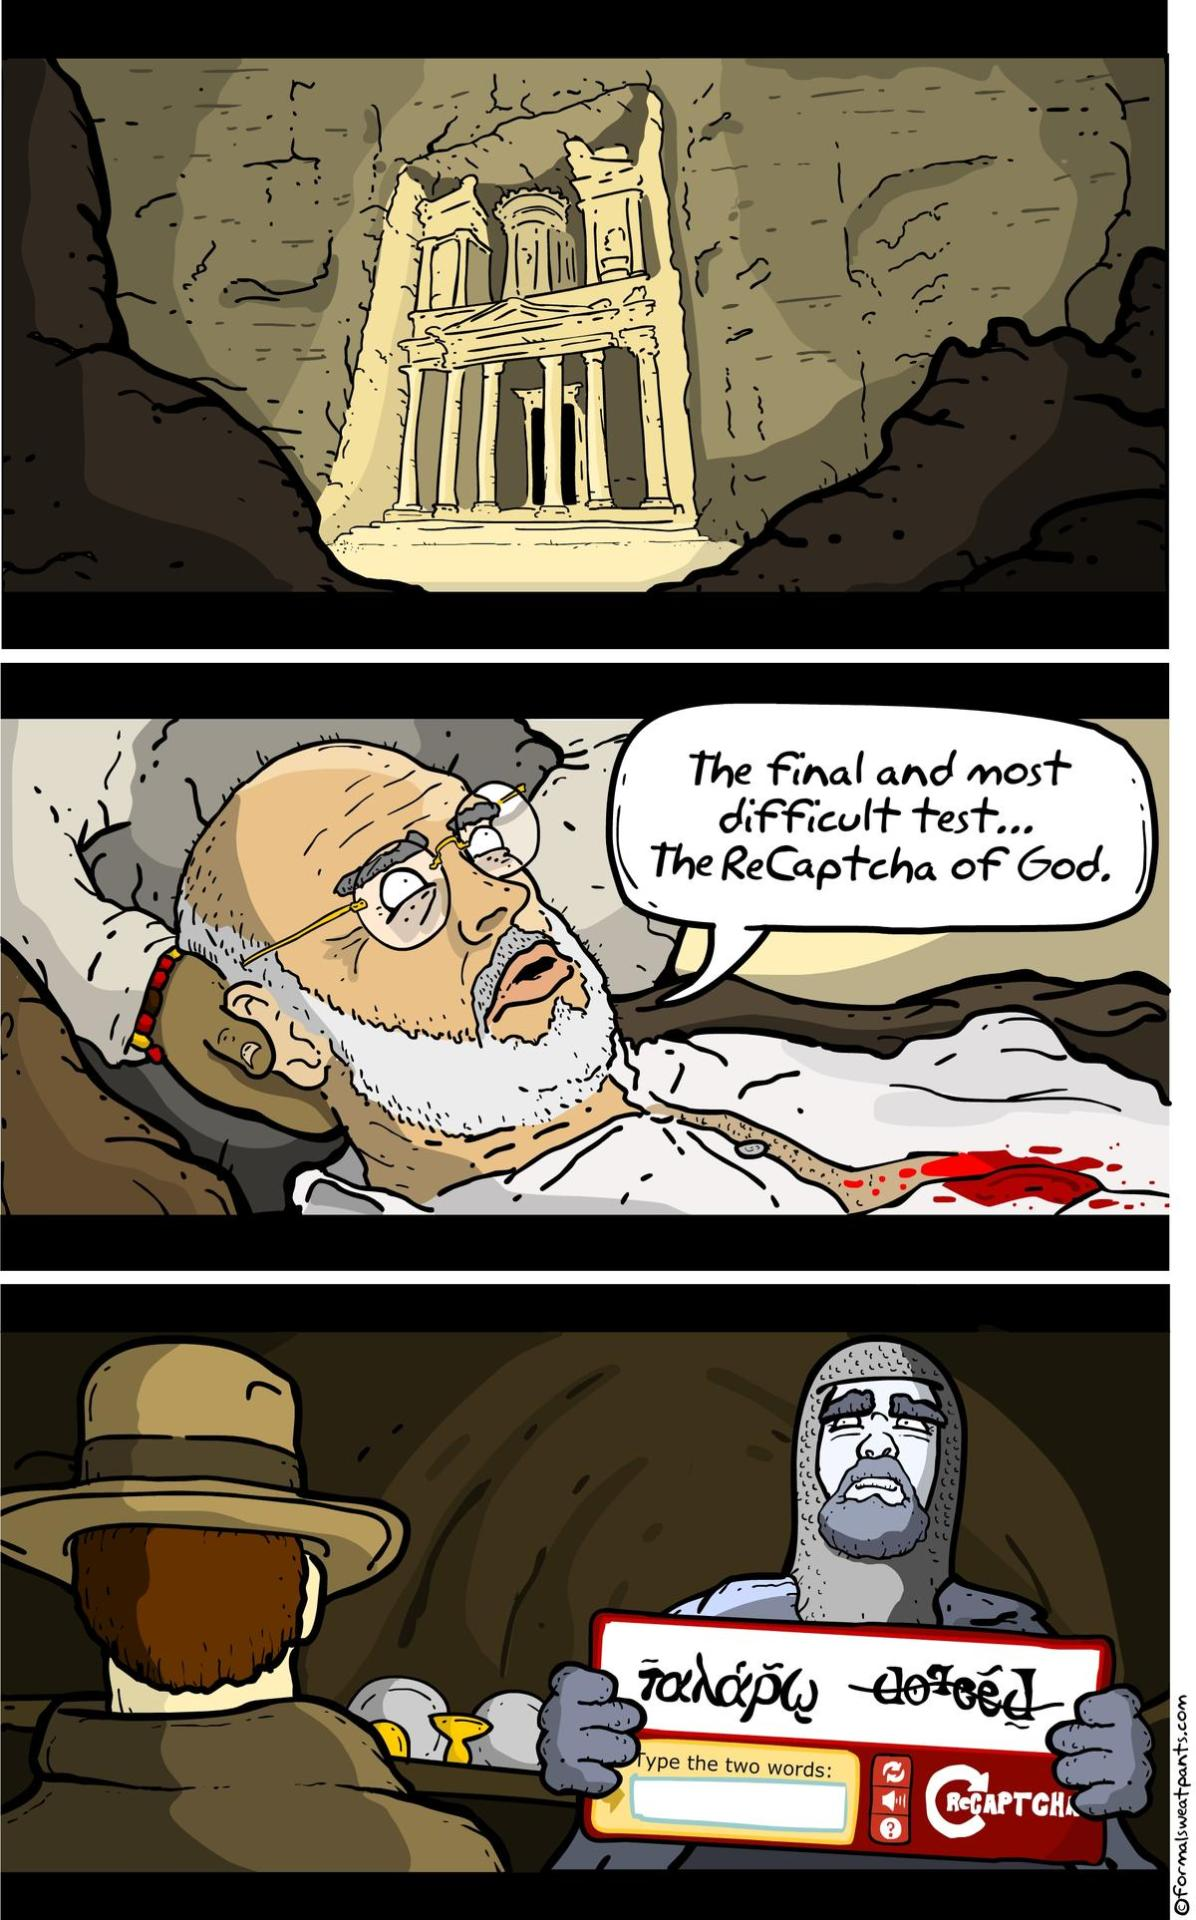 Indiana Jones' Real Final Test for the Holy Grail [COMIC]